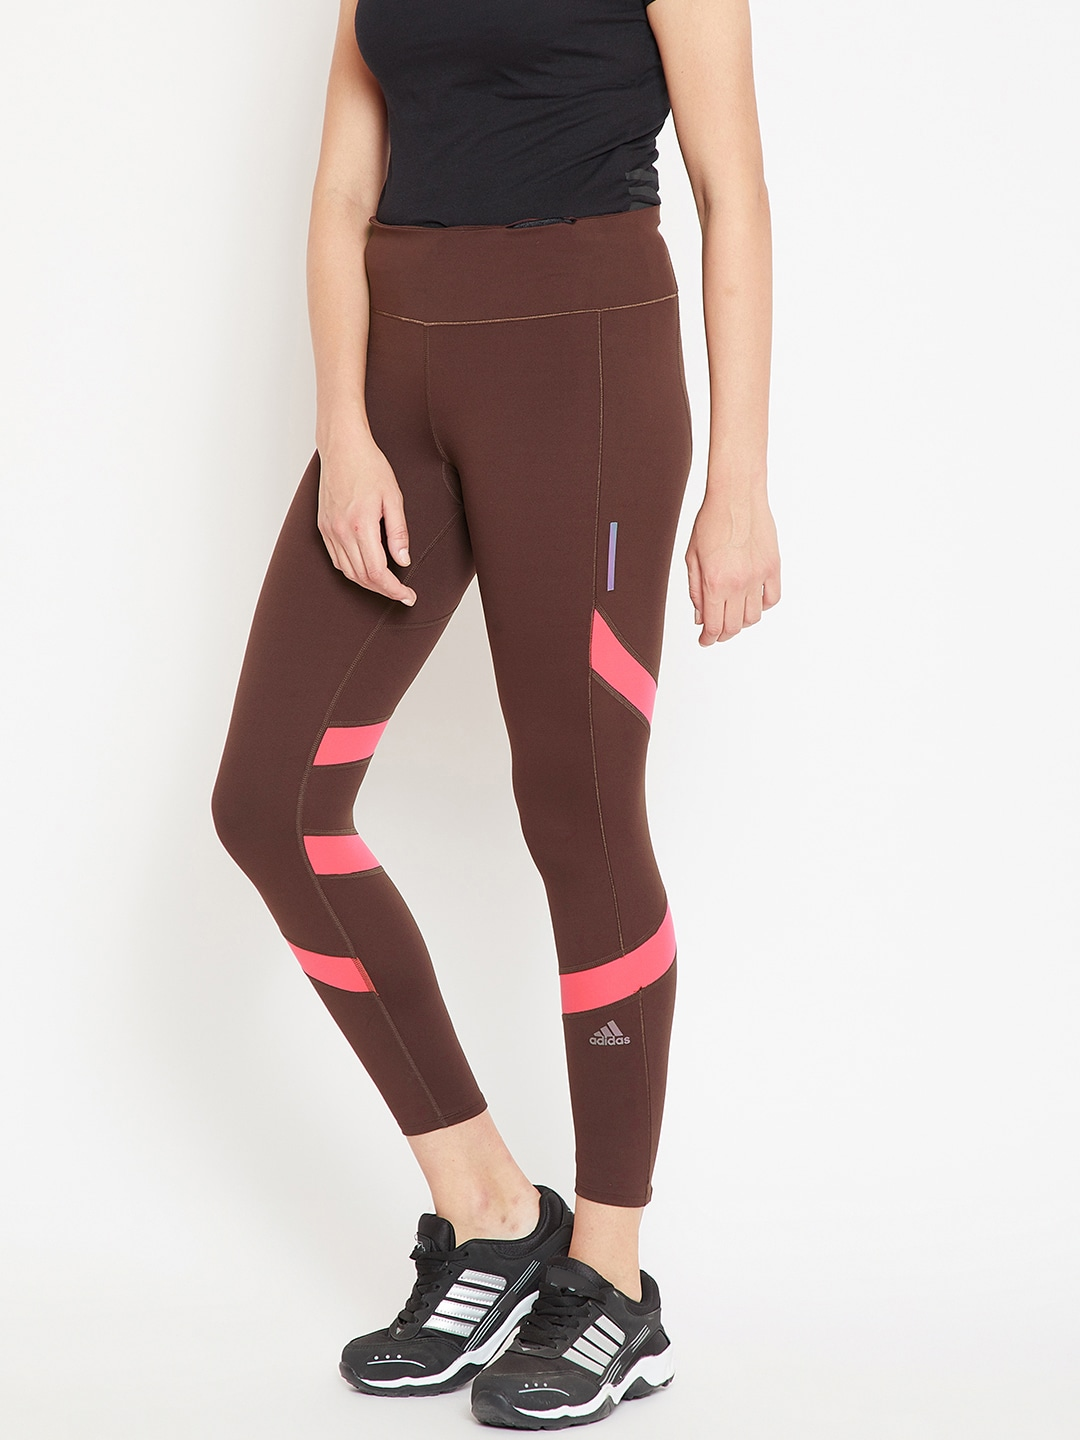 d3f1b9f124795 Adidas Species Watches Tights - Buy Adidas Species Watches Tights online in  India